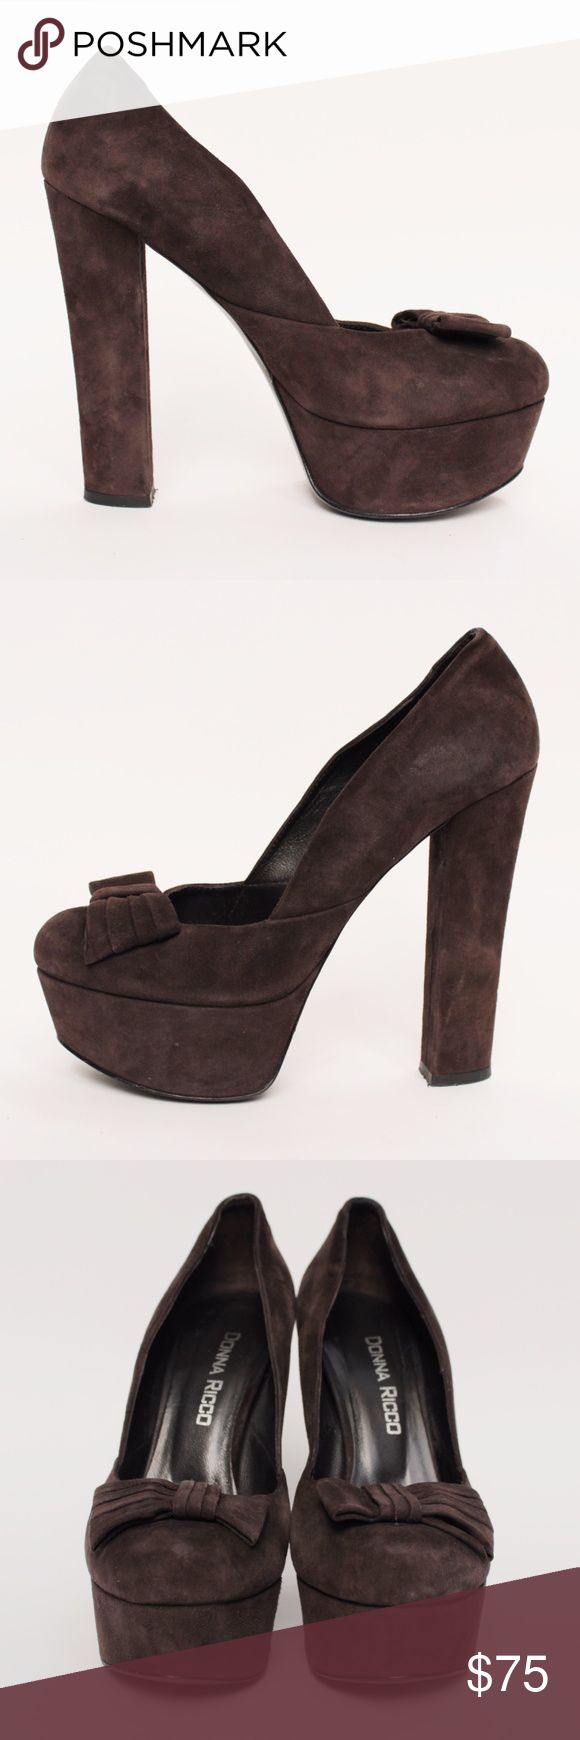 """Donna Ricco Brown Suede Chunky Bow Platform 7M W64 Donna Ricco Brown Round Slip On Chunky Covered Round Toe Bow Accent Suede Platform Chunky Heel Retails $200 Size:  7US 37 EU  Color: Brown  Pattern: Suede Toe: Round Heel: Chunky Covered Heel Height: 5"""" Platform: 1.5"""" Closure: Slip On Upper: Suede Lining: Leather Sole: Man Made Style #: 424 Condition: Pre-Owned Excelllent, Gently Worn! Comes from a pet and smoke free environment!  Please review pictures and contact me if you have any…"""